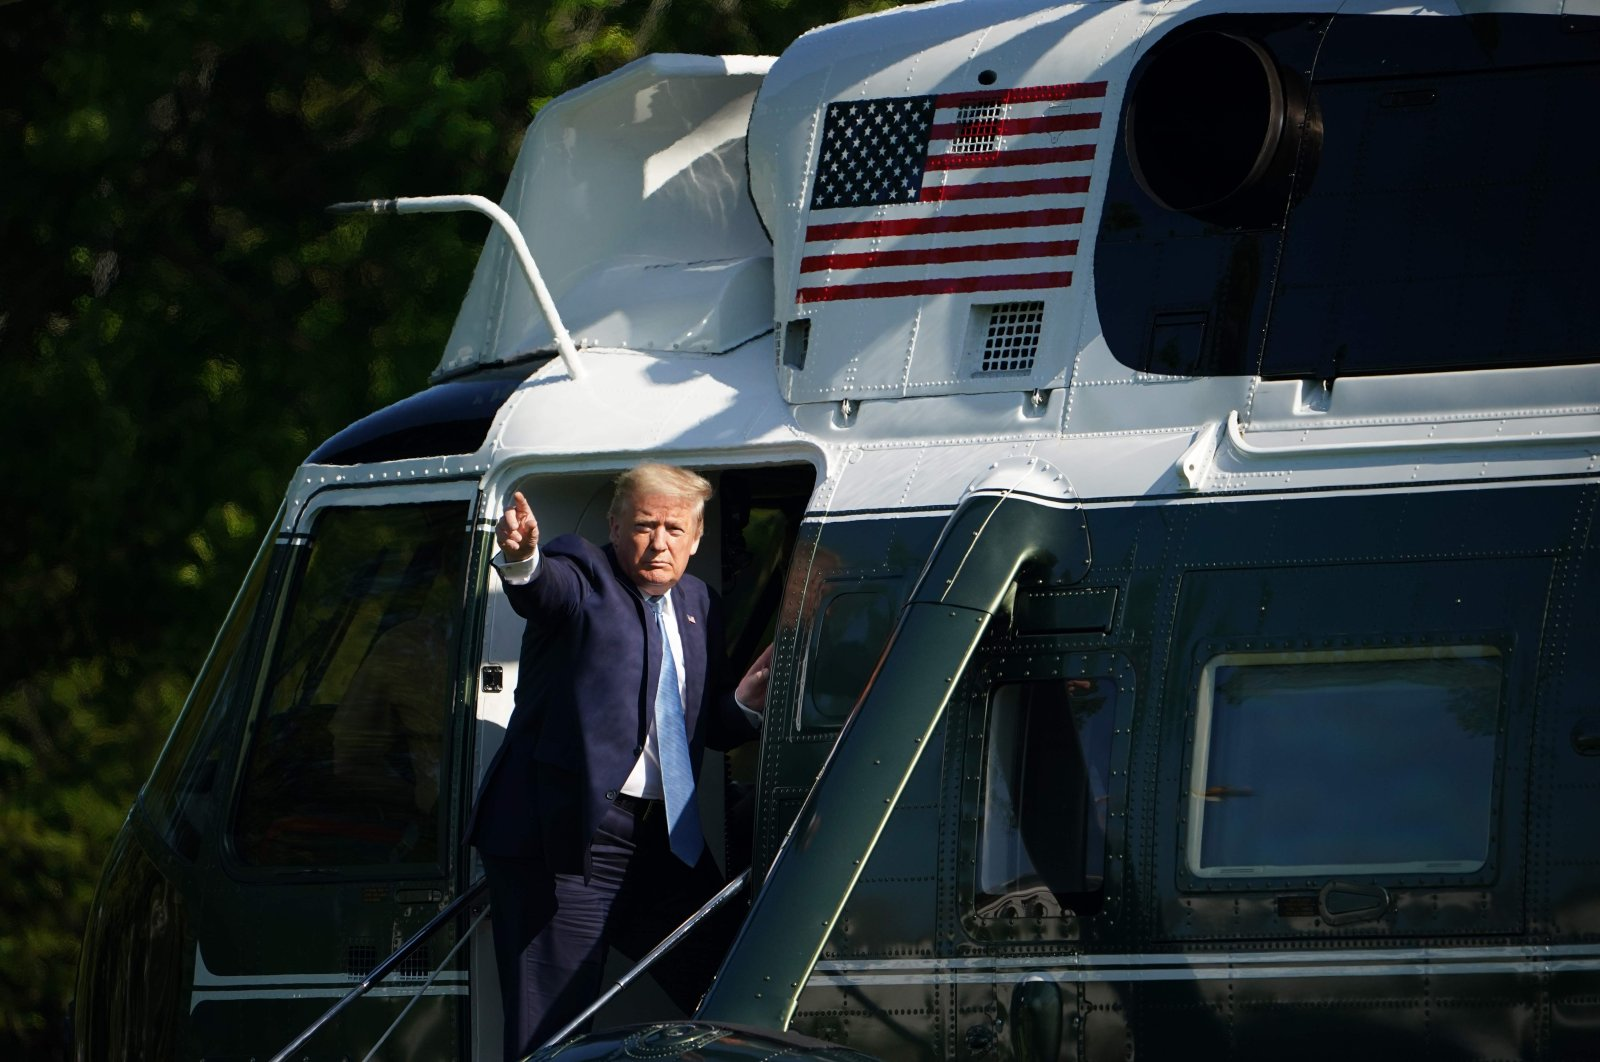 U.S. President Donald Trump waves as he boards Marine One before departing from the South Lawn of the White House in Washington, D.C., May 15, 2020. (AFP Photo)